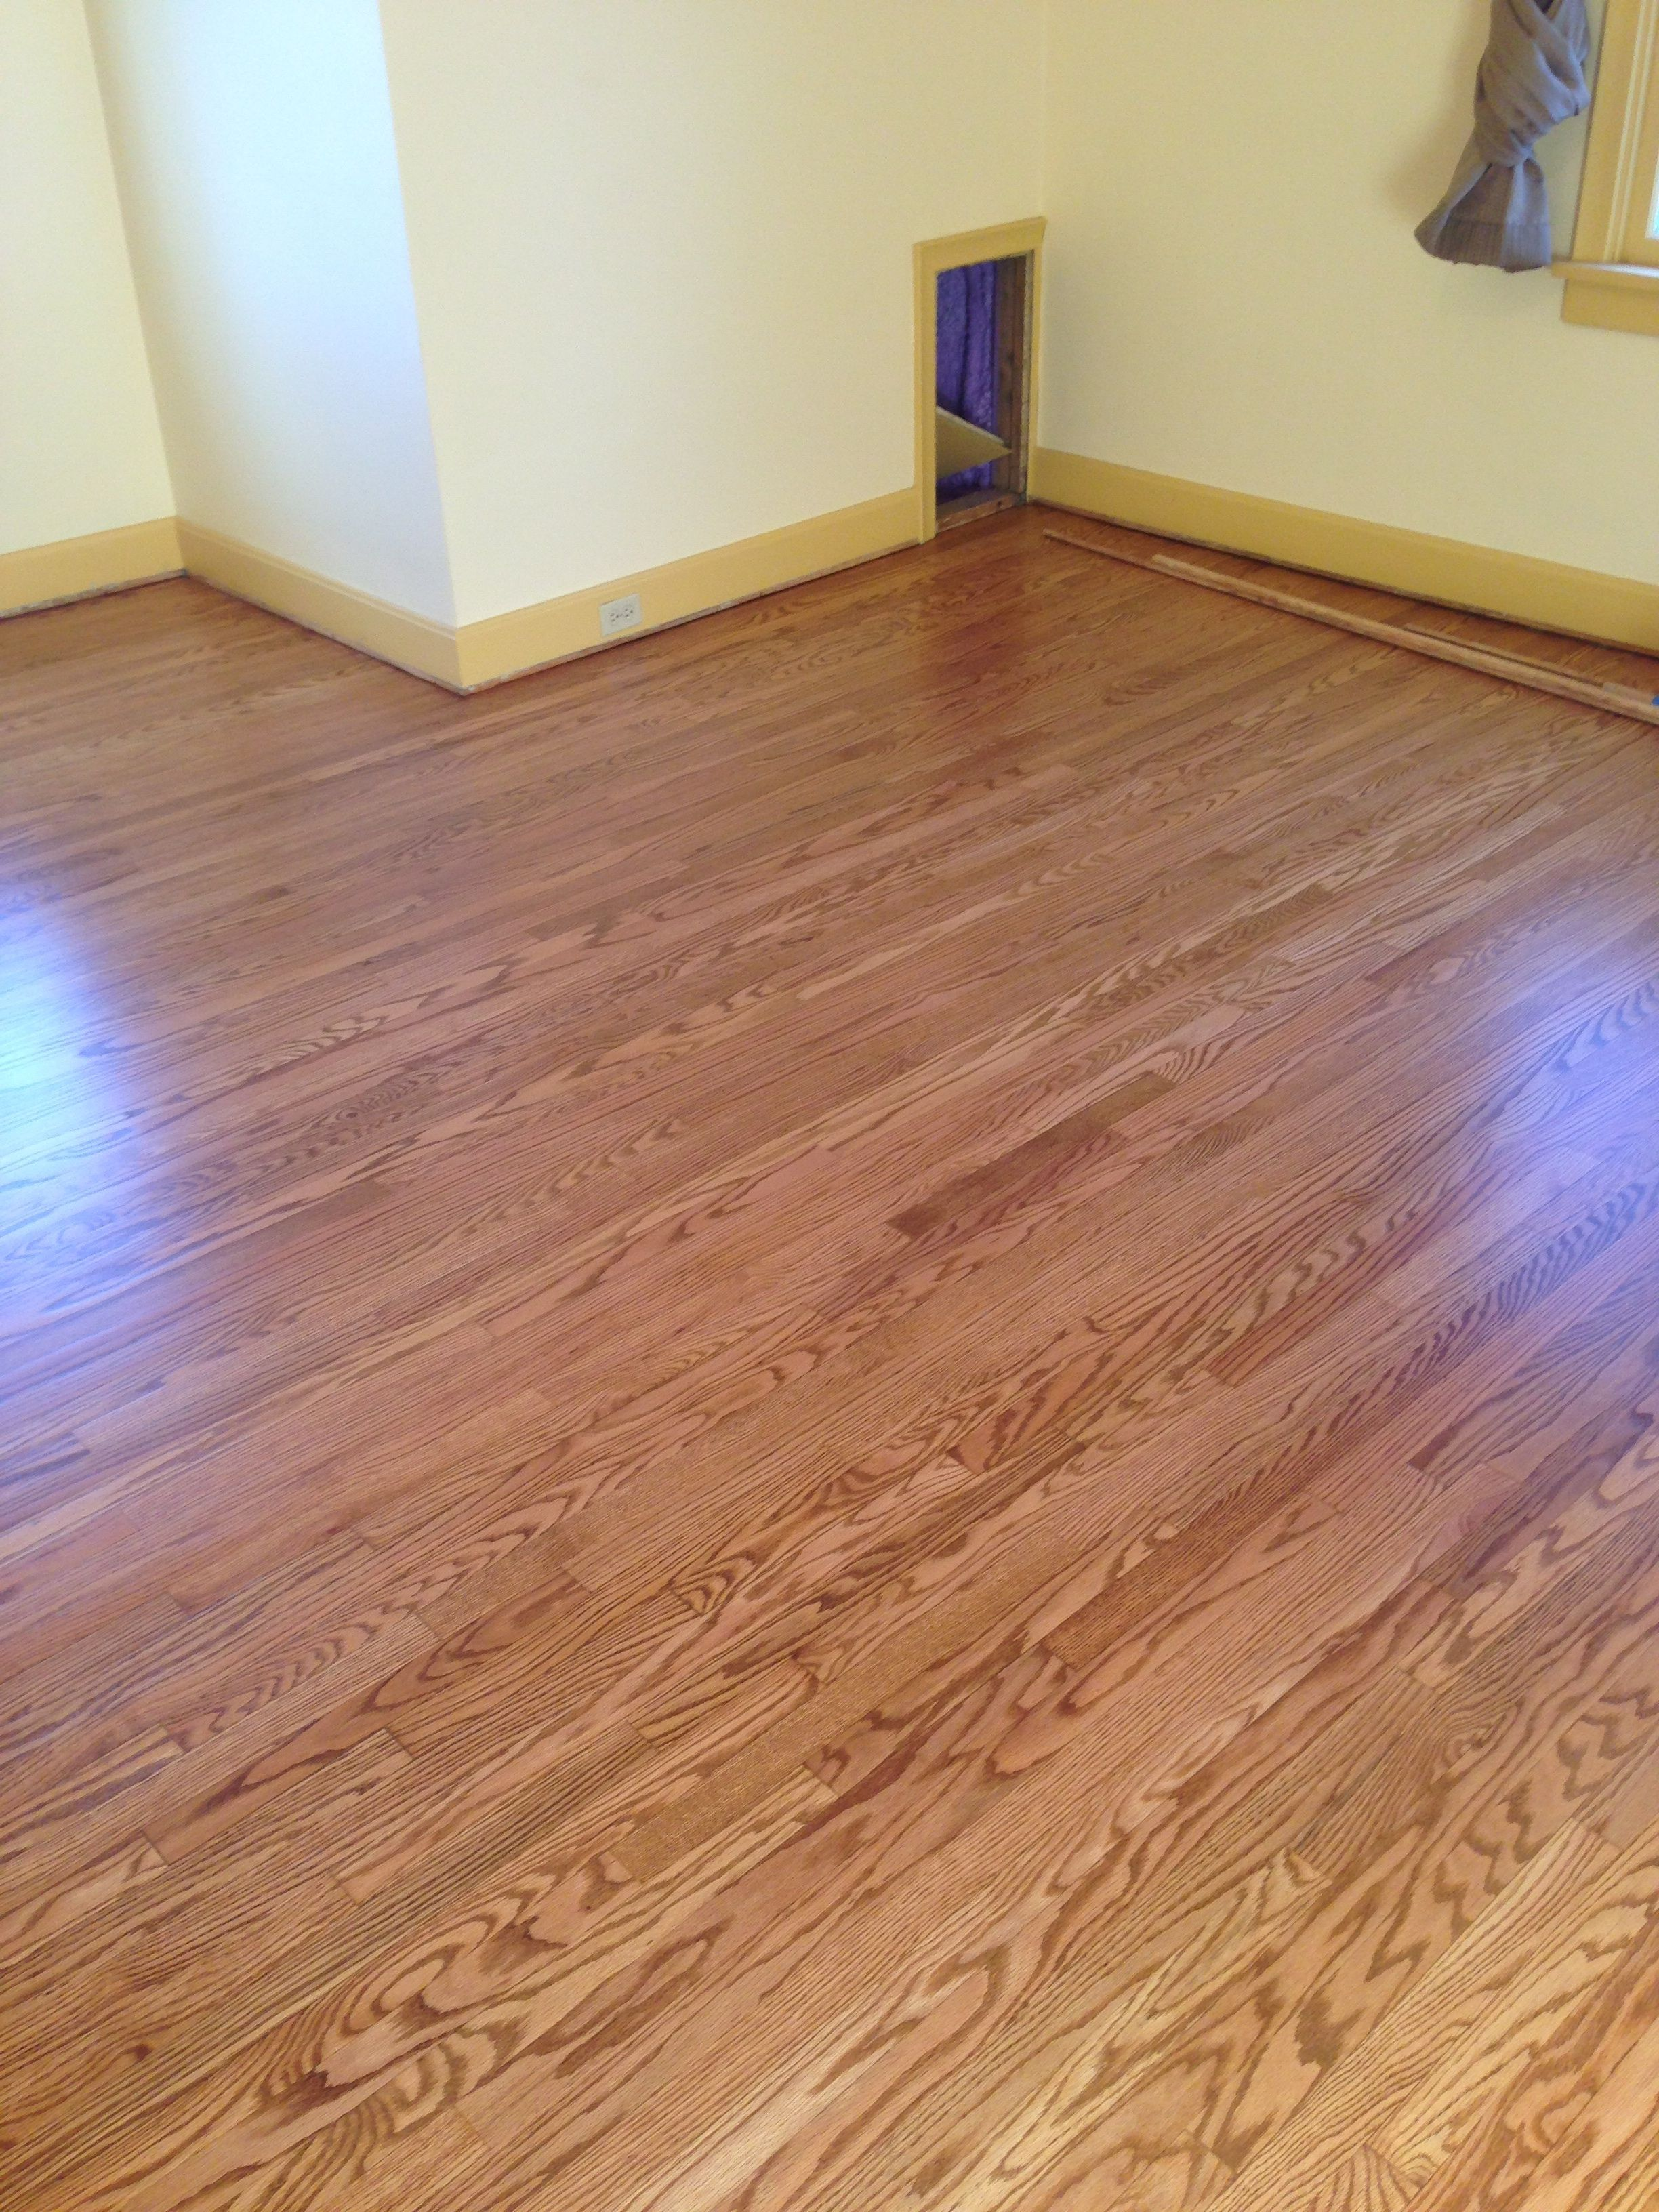 1950s 2 1 4 Red Oak Hardwood Floor Refinished By Smithbrosfloors Com Hardwood Design Hardwood Floors Living Room Wood Floor